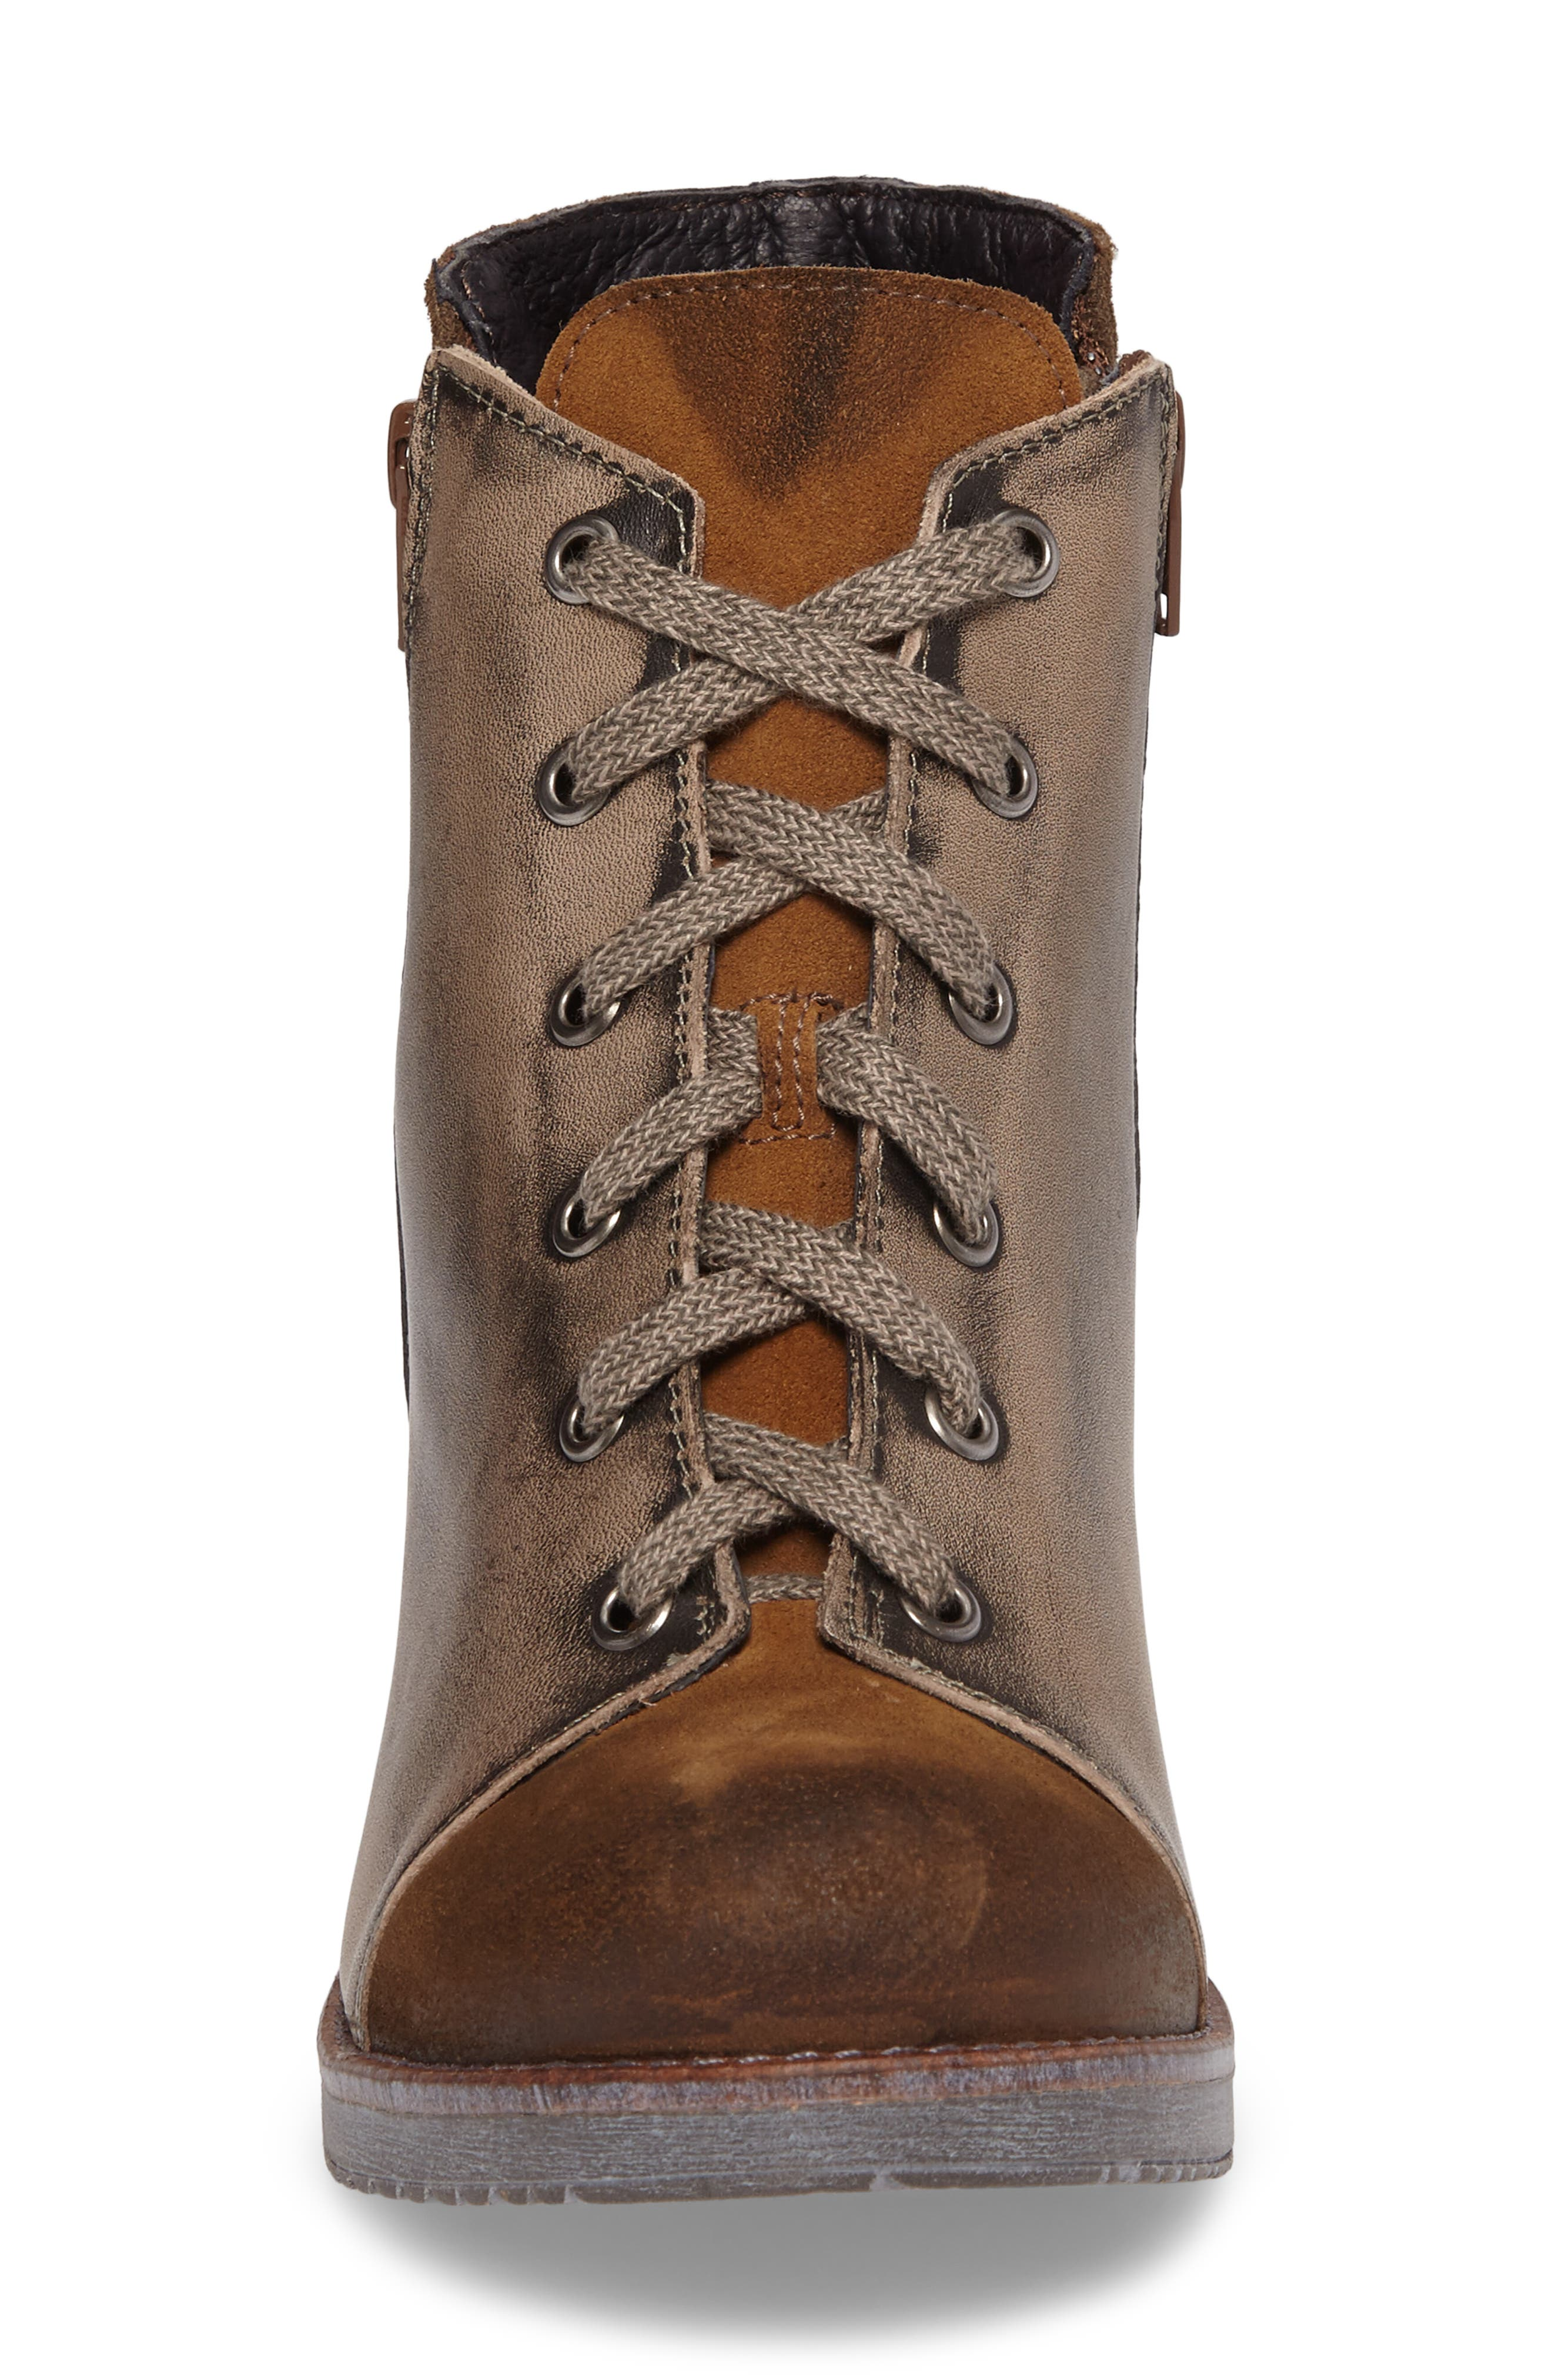 Groovy Lace Up Bootie,                             Alternate thumbnail 8, color,